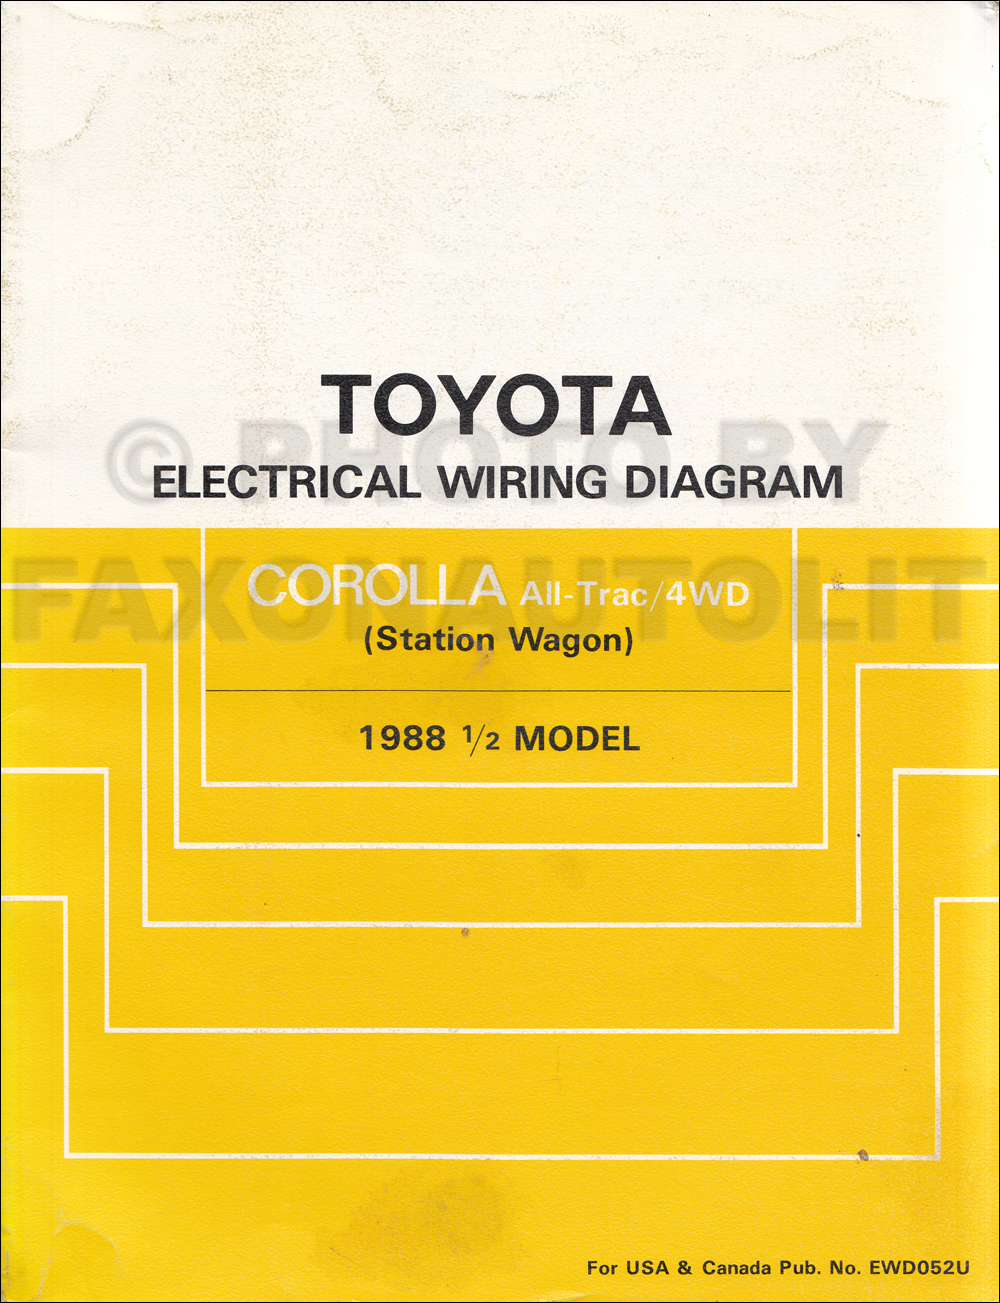 Service Manual Wiring Diagram Most Uptodate Info 2b1 Repair 1988 Toyota Corolla All Trac 4wd Station Wagon Rh Faxonautoliterature Com Tesla Model S Theory Of